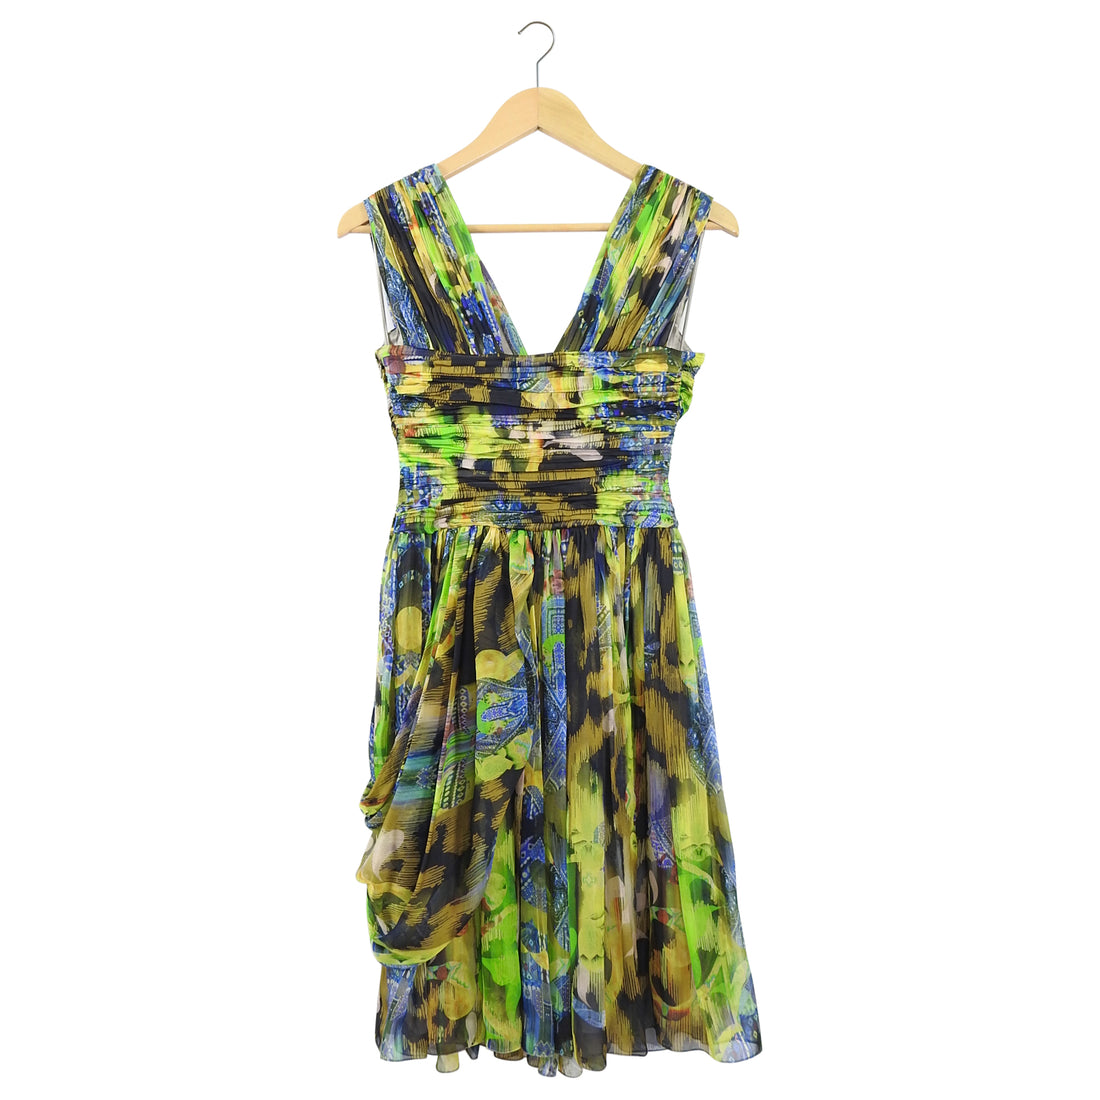 Matthew Williamson Multi Silk Chiffon Cocktail Dress - XS / 0